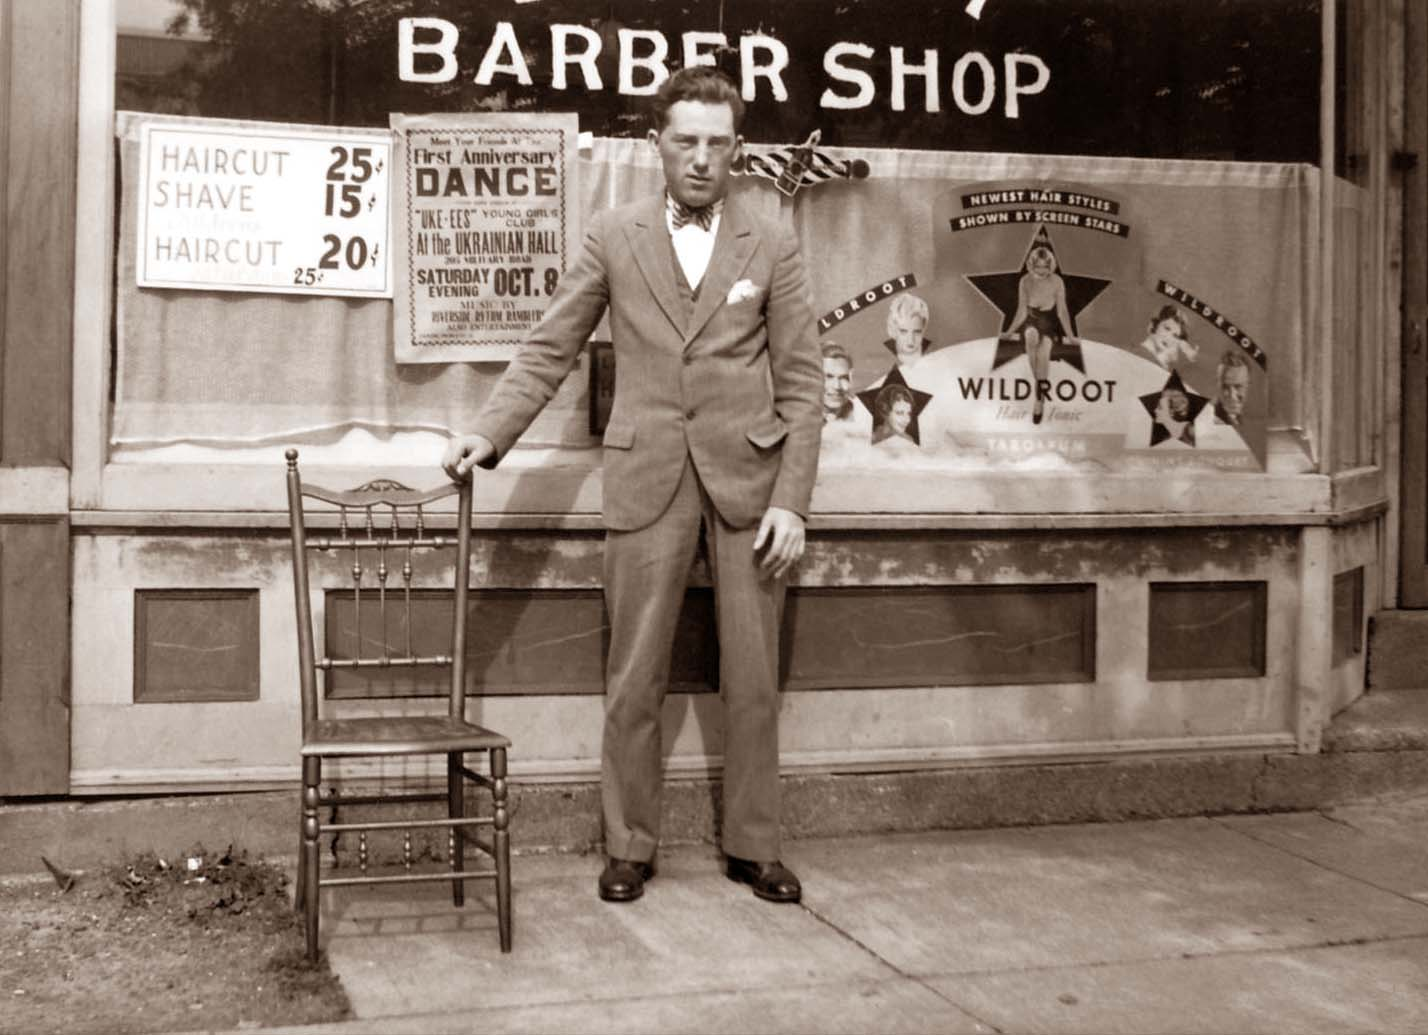 Barber Shop Black : collection jeffrey scales house s barber shop buy black 1988 http www ...